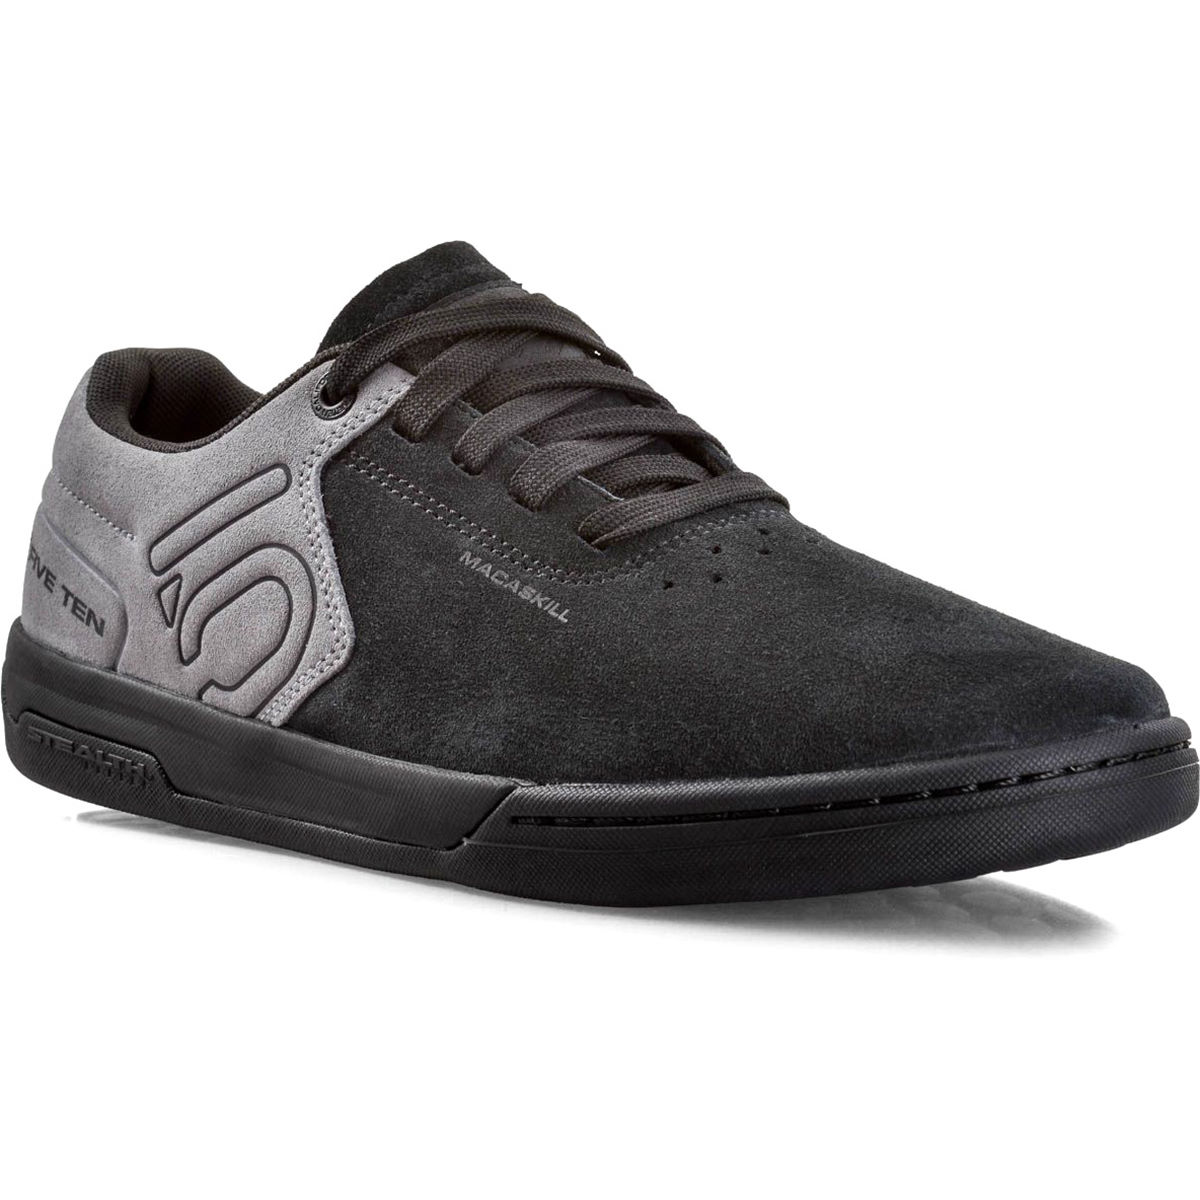 Zapatillas de MTB Five Ten Danny MacAskill - Zapatillas MTB